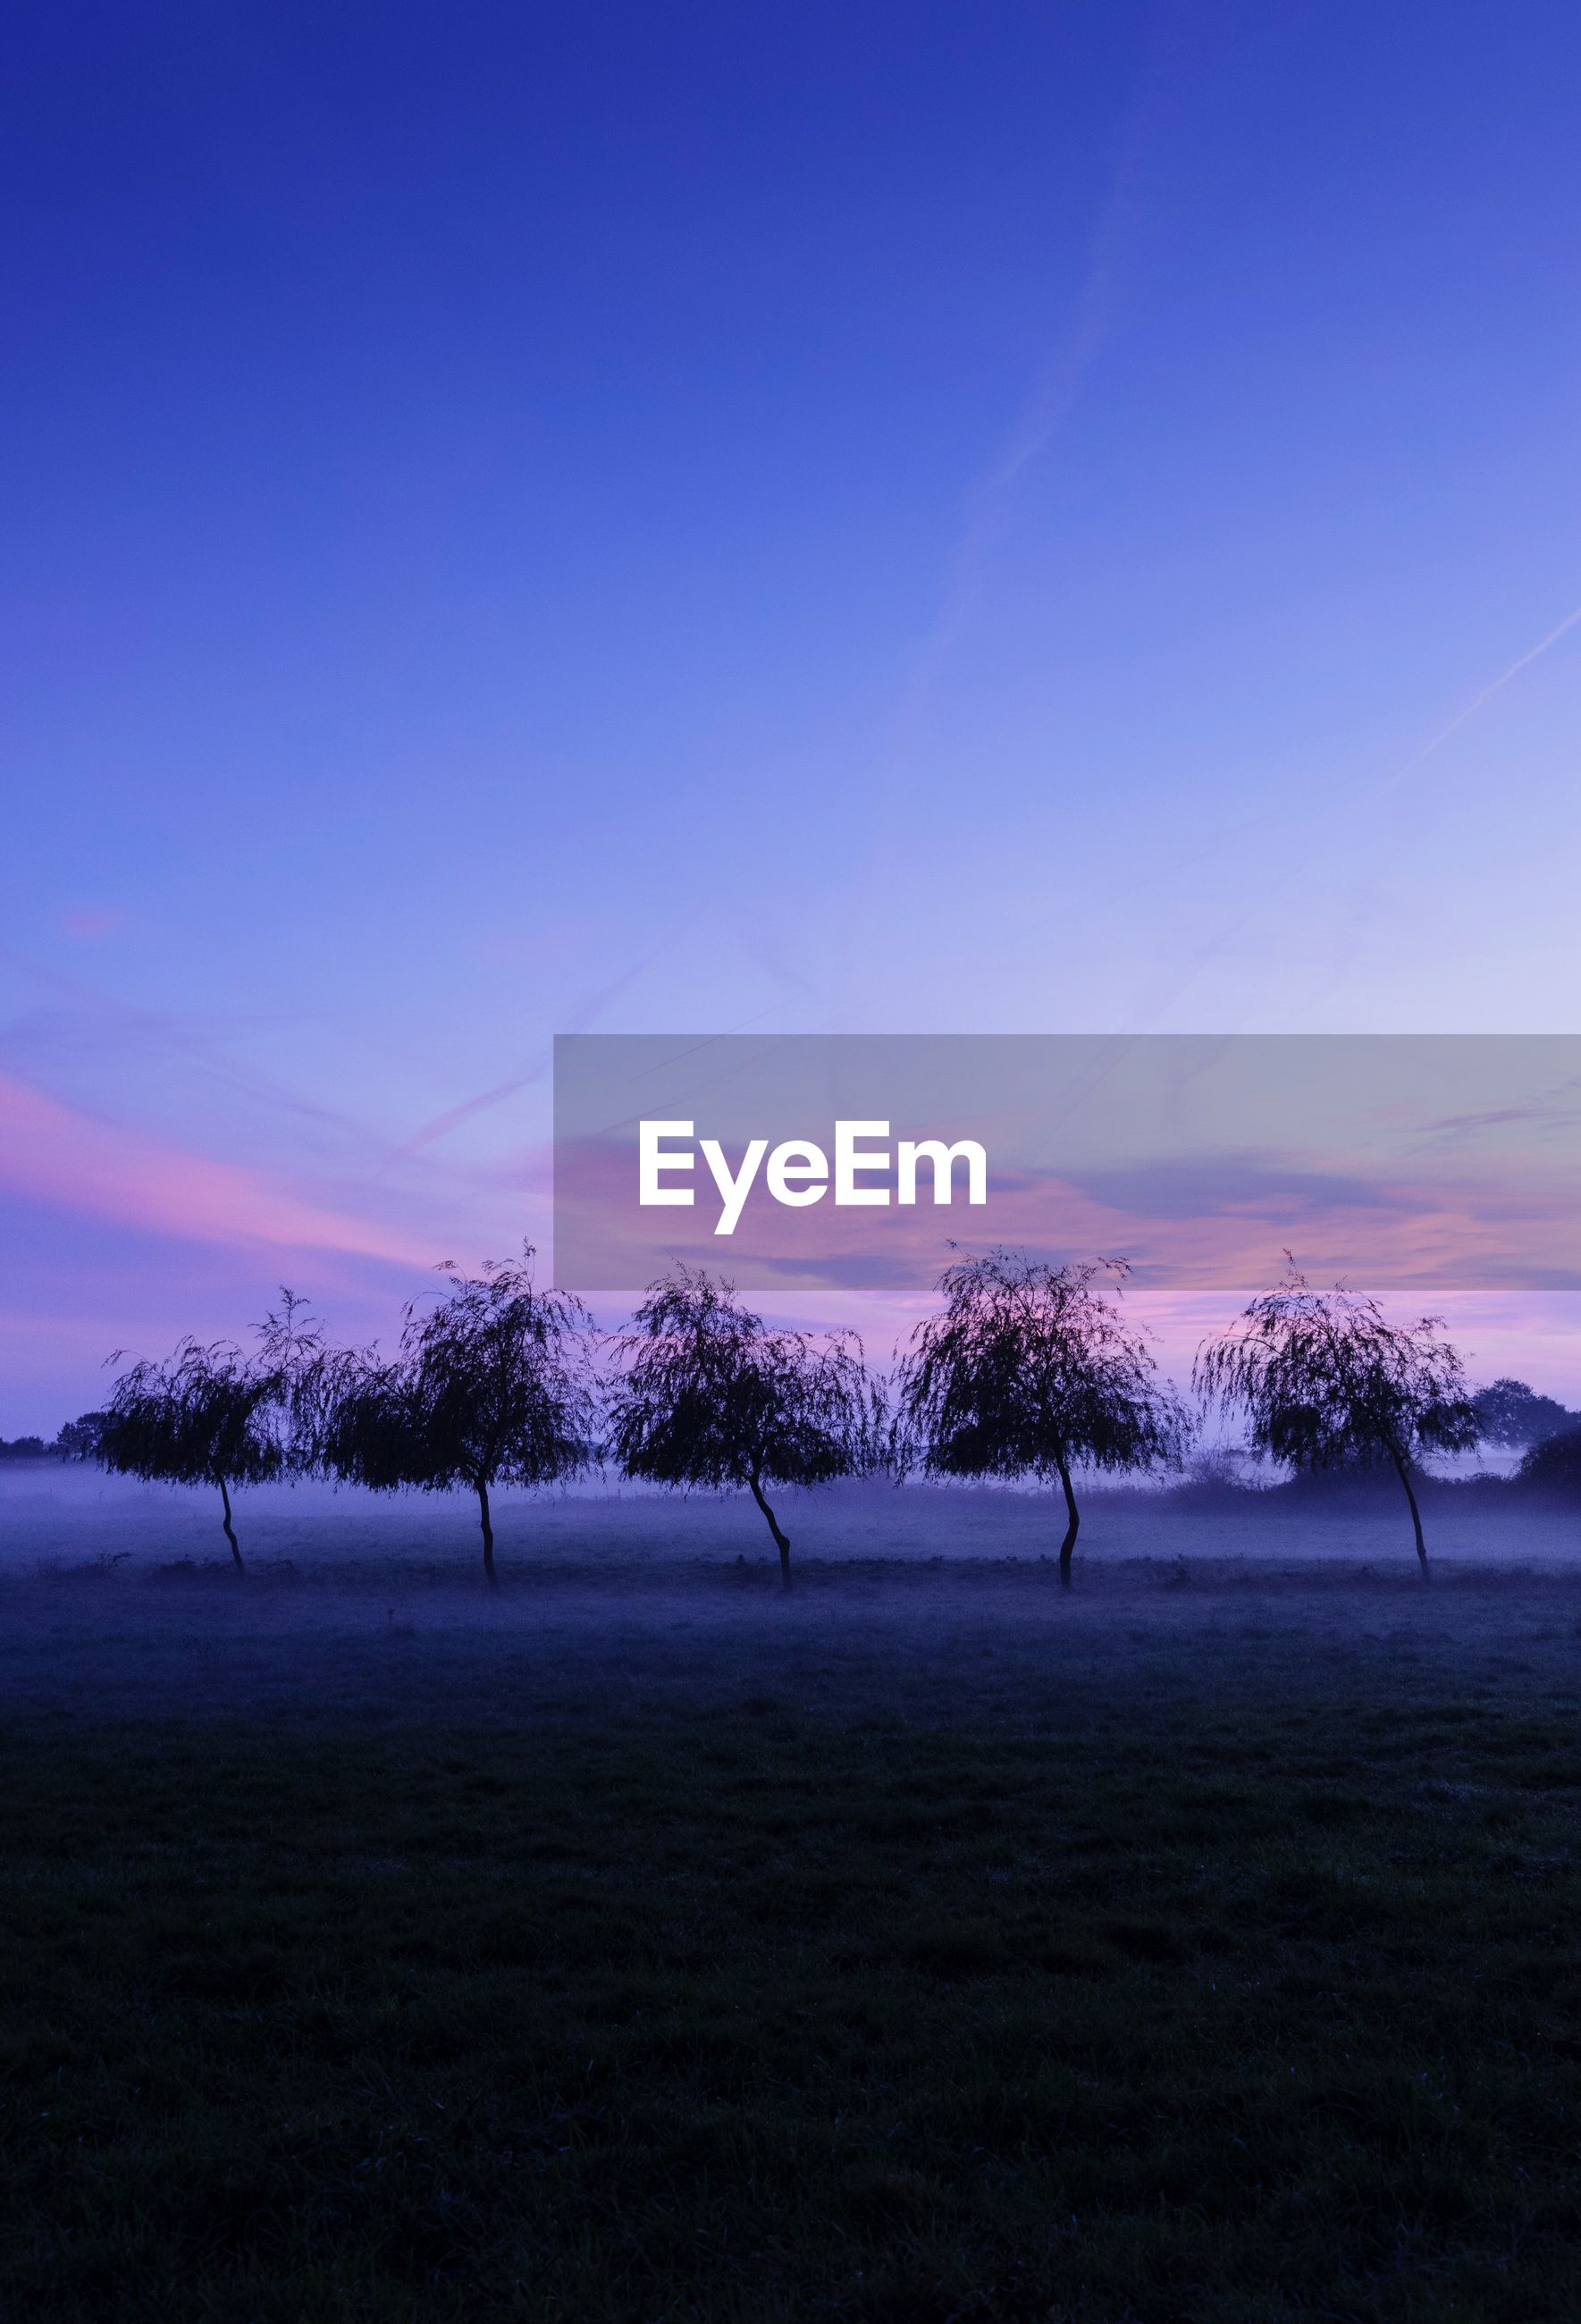 sky, beauty in nature, tree, environment, scenics - nature, plant, tranquil scene, land, field, landscape, nature, tranquility, non-urban scene, sunset, cloud - sky, no people, idyllic, copy space, winter, outdoors, purple